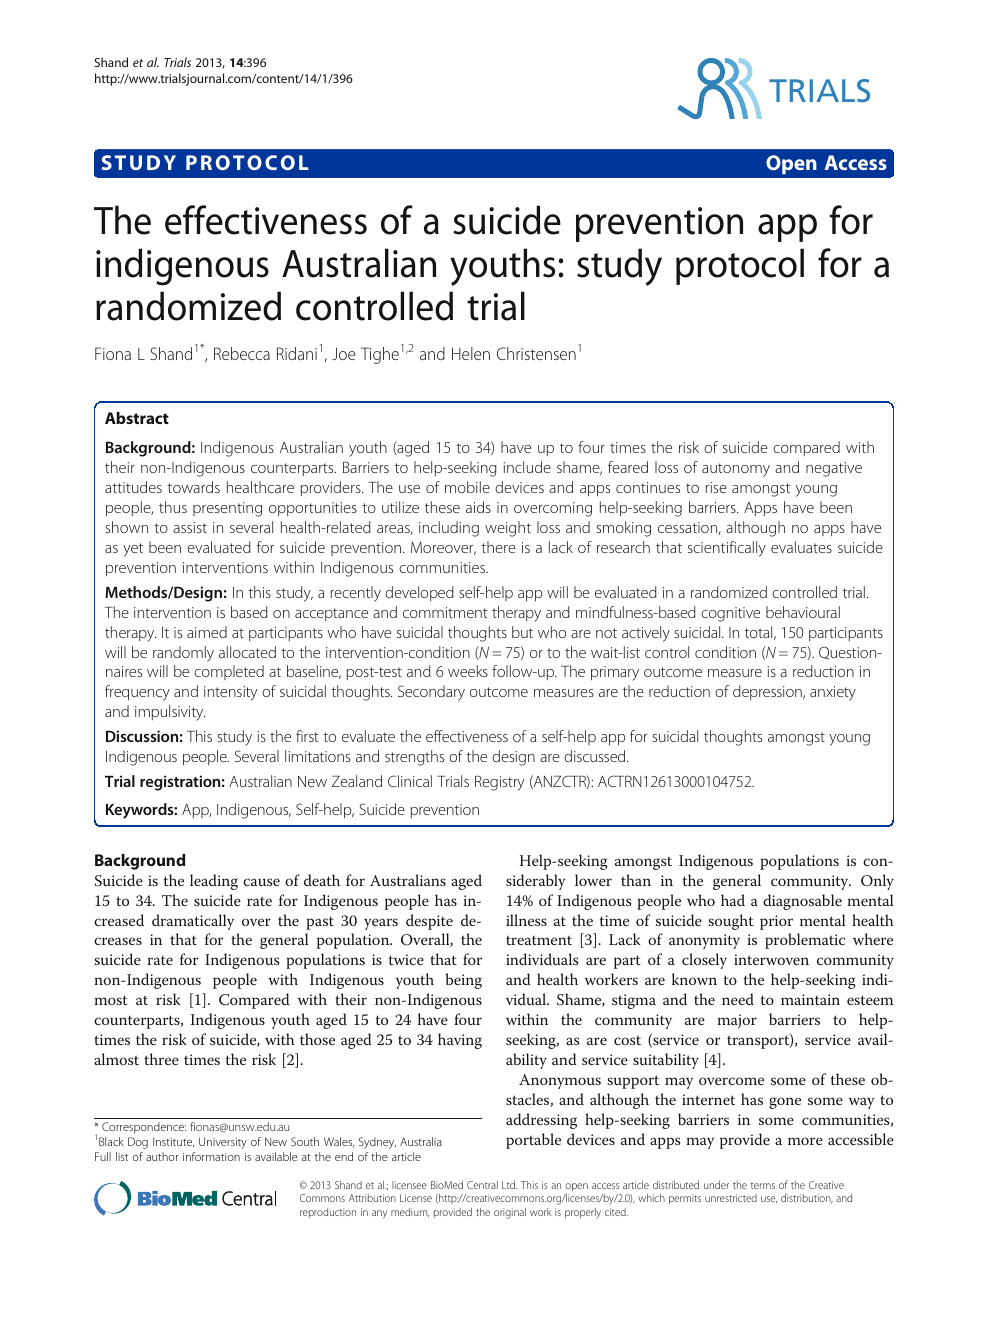 suicide prevention research paper